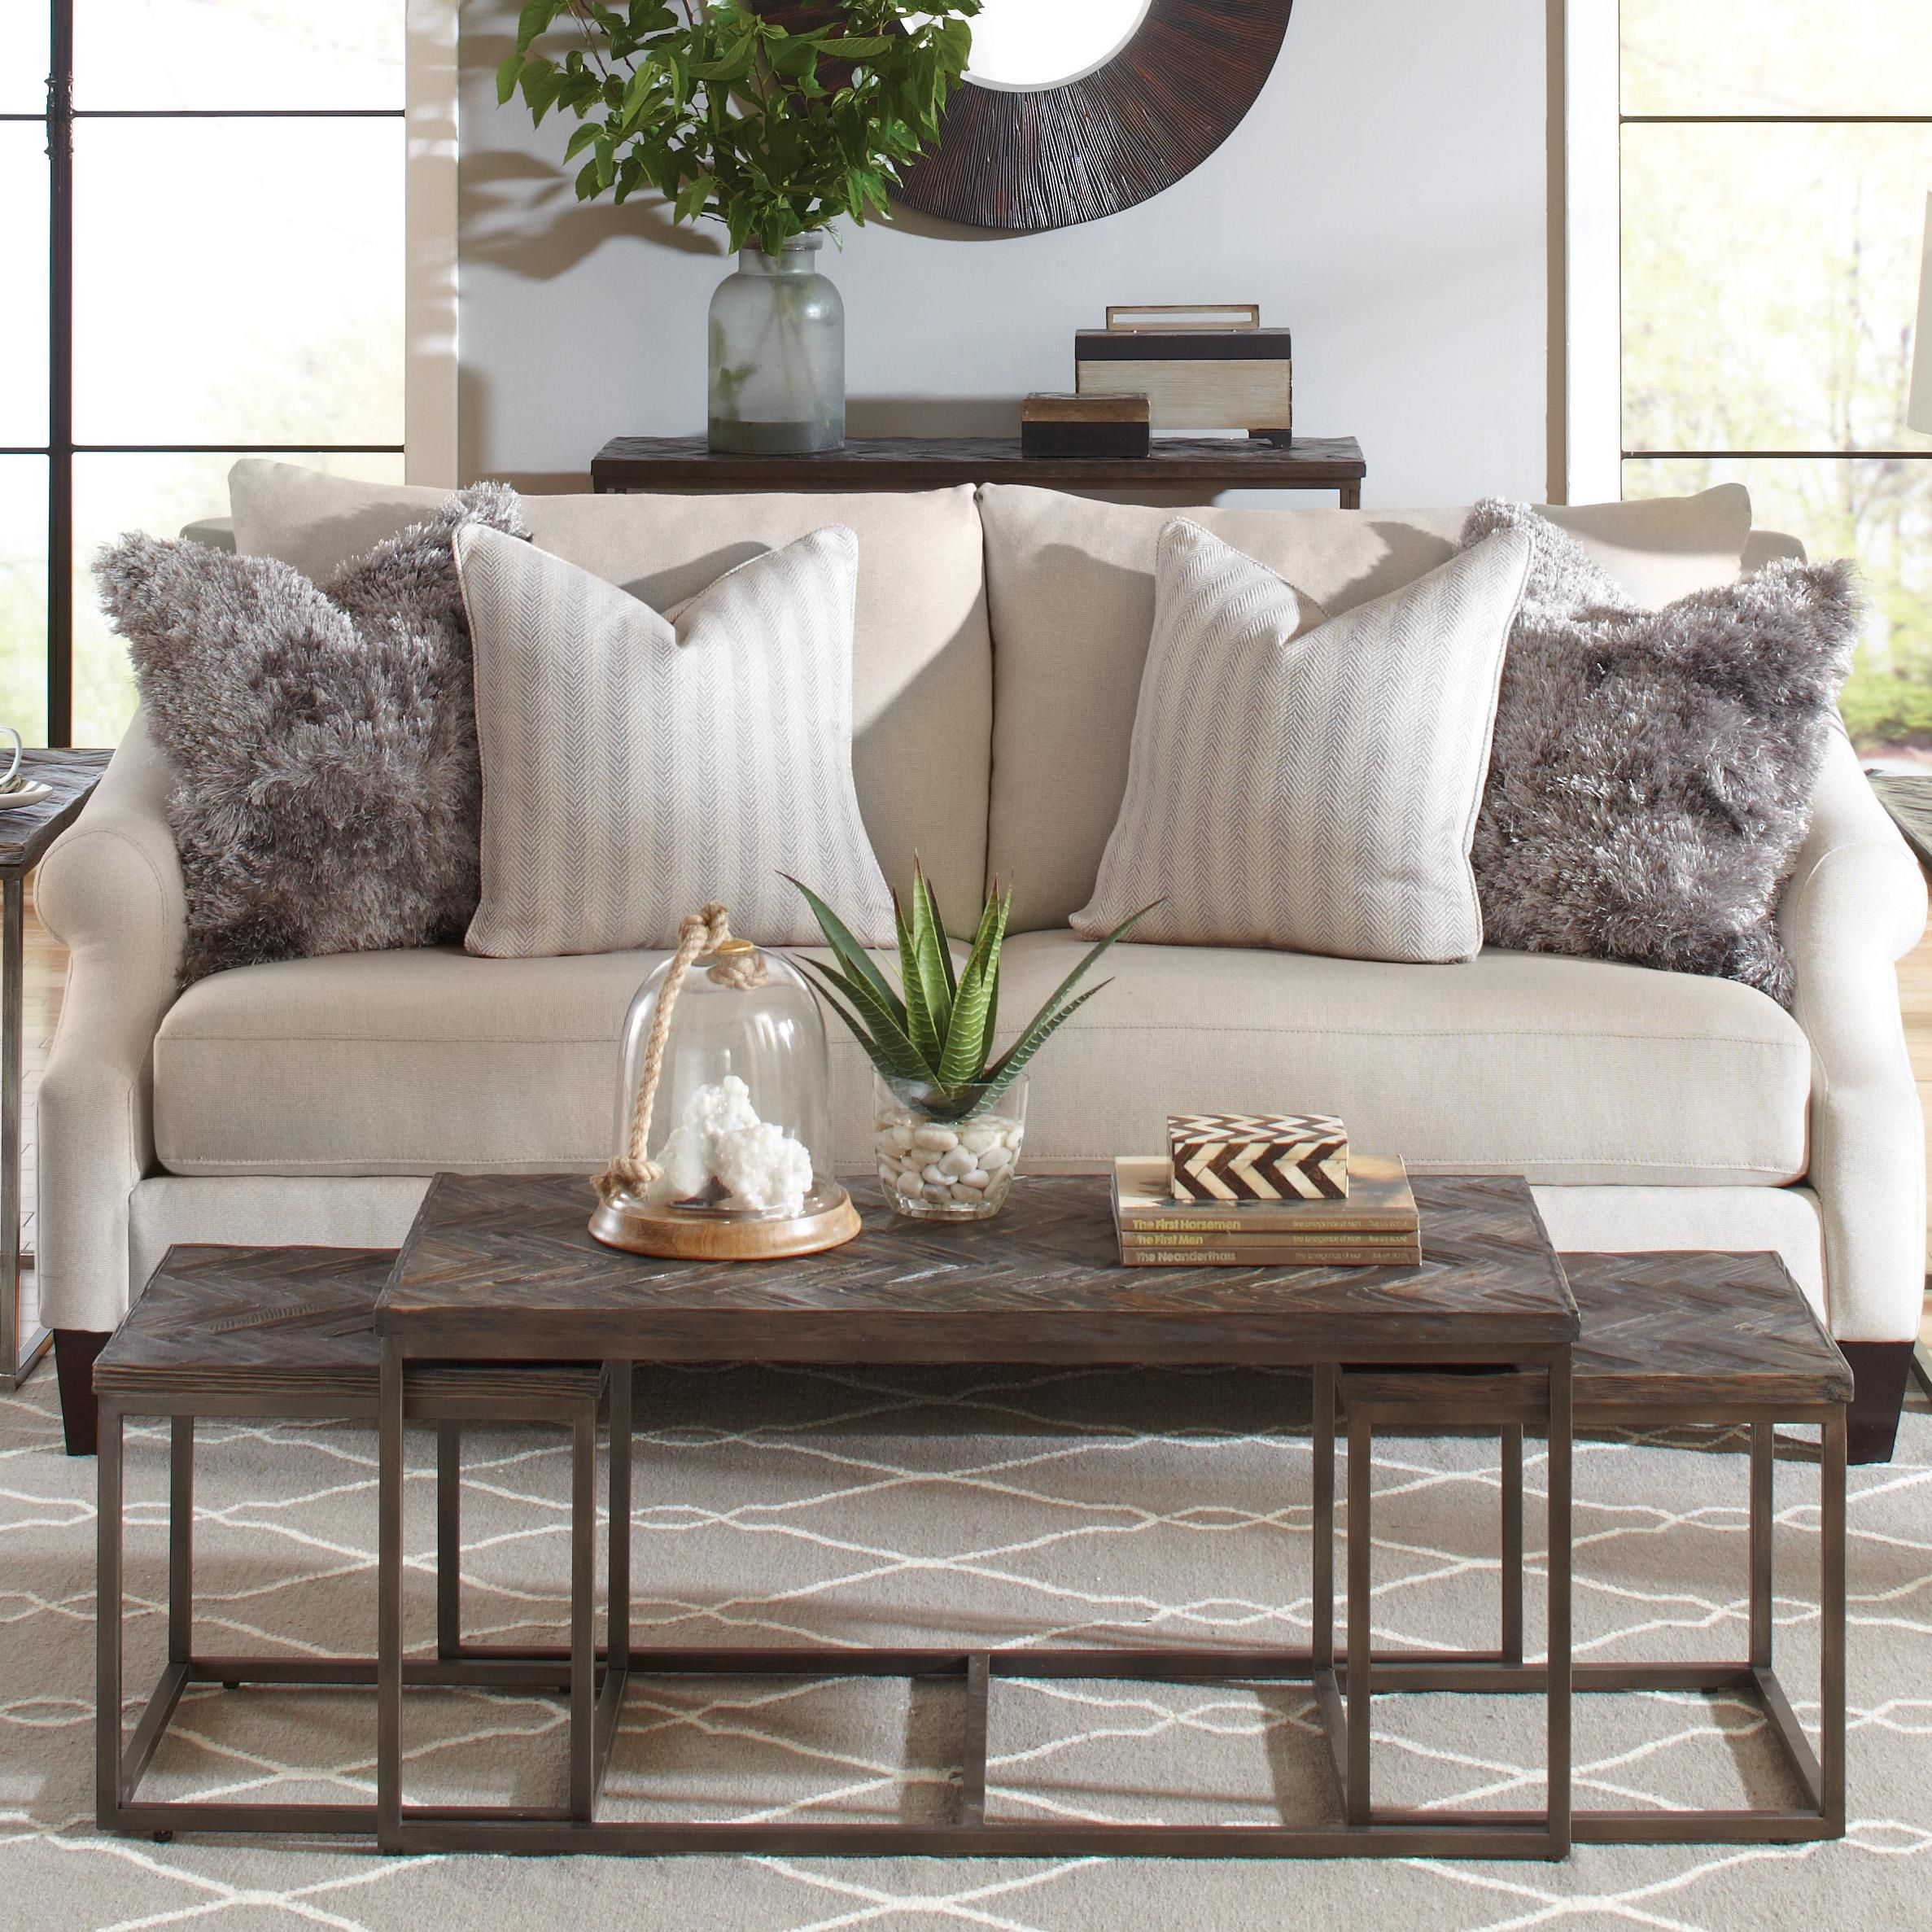 With The Three Piece Nesting Coffee Table You Get Not Only A